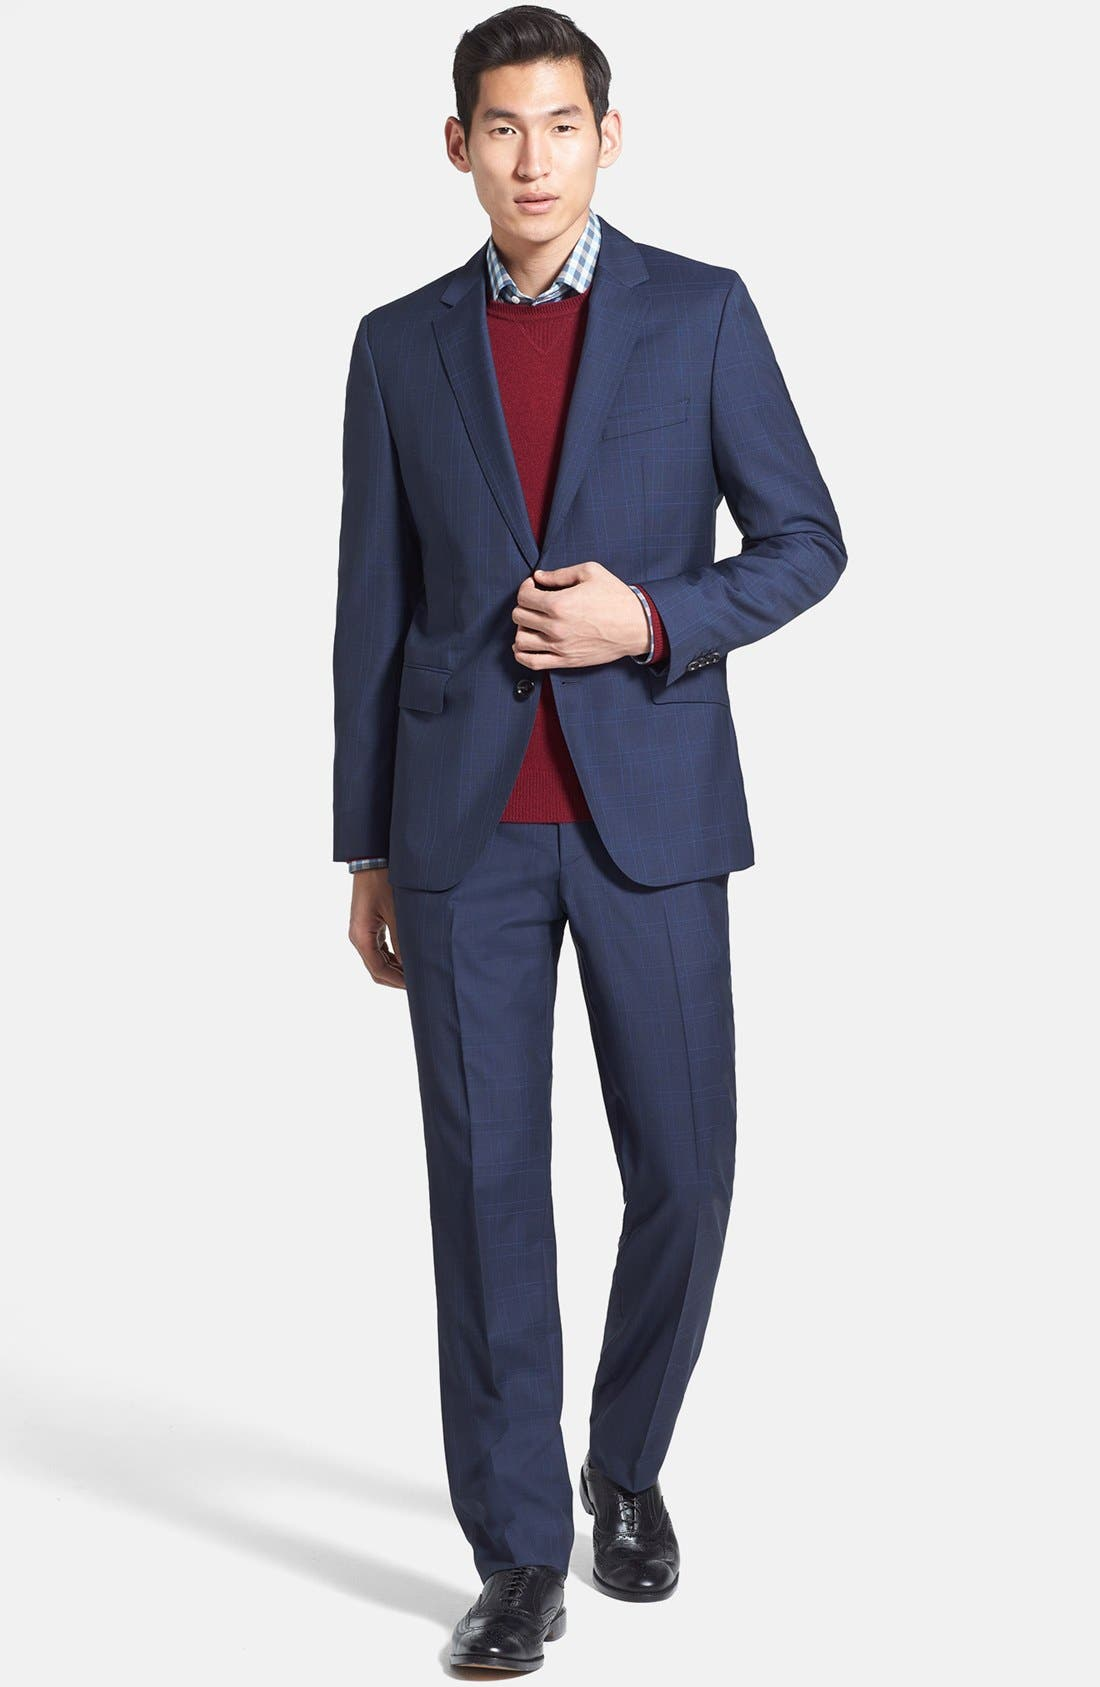 Alternate Image 1 Selected - BOSS HUGO BOSS 'James/Sharp' Trim Fit Windowpane Suit